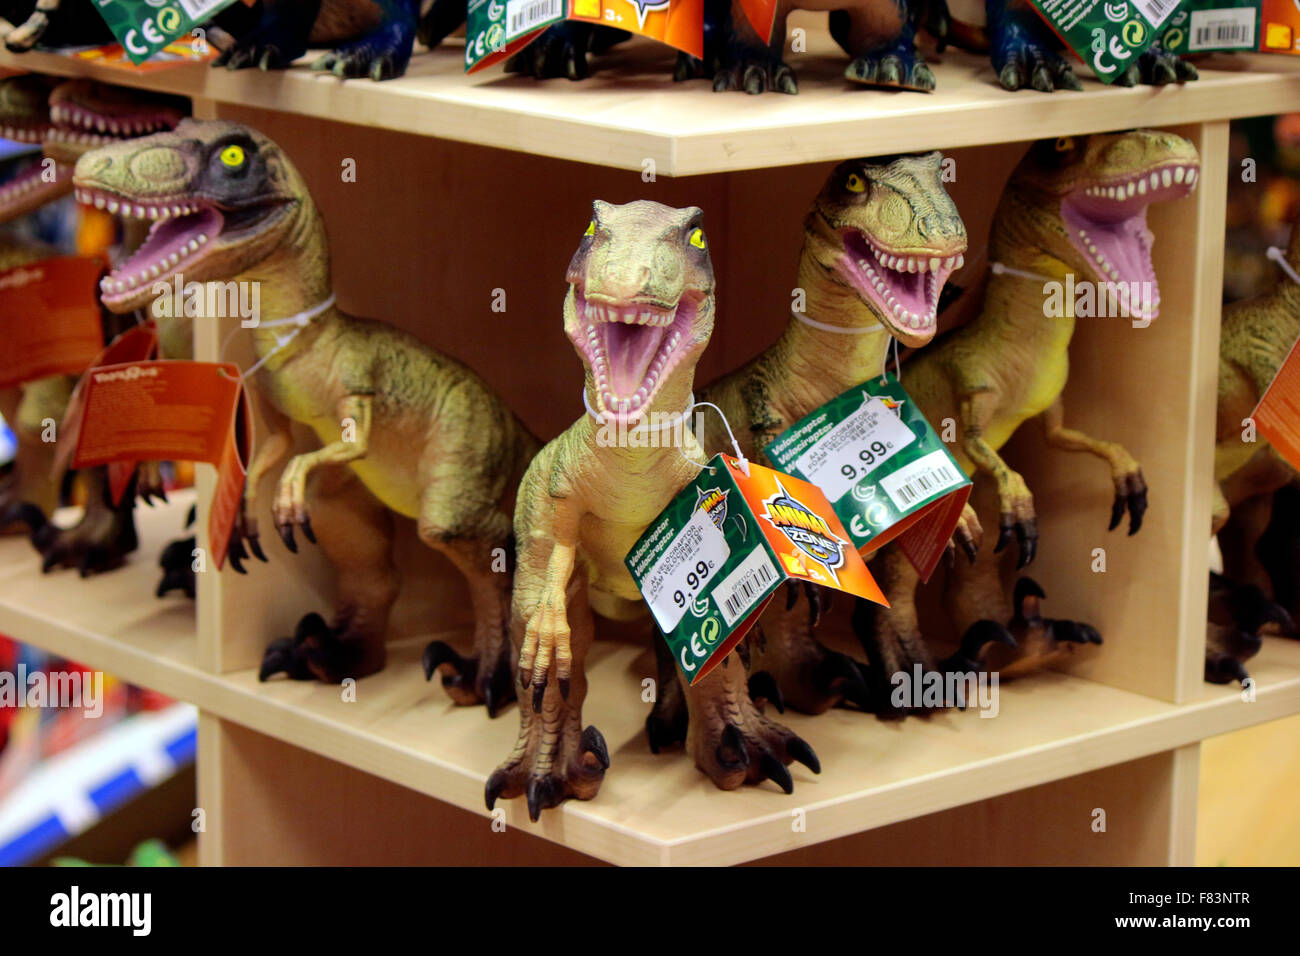 Saurus stock photos saurus stock images alamy tyrannus saurus rex das neue einkaufszentrum mall of berlin am leipziger platz thecheapjerseys Gallery